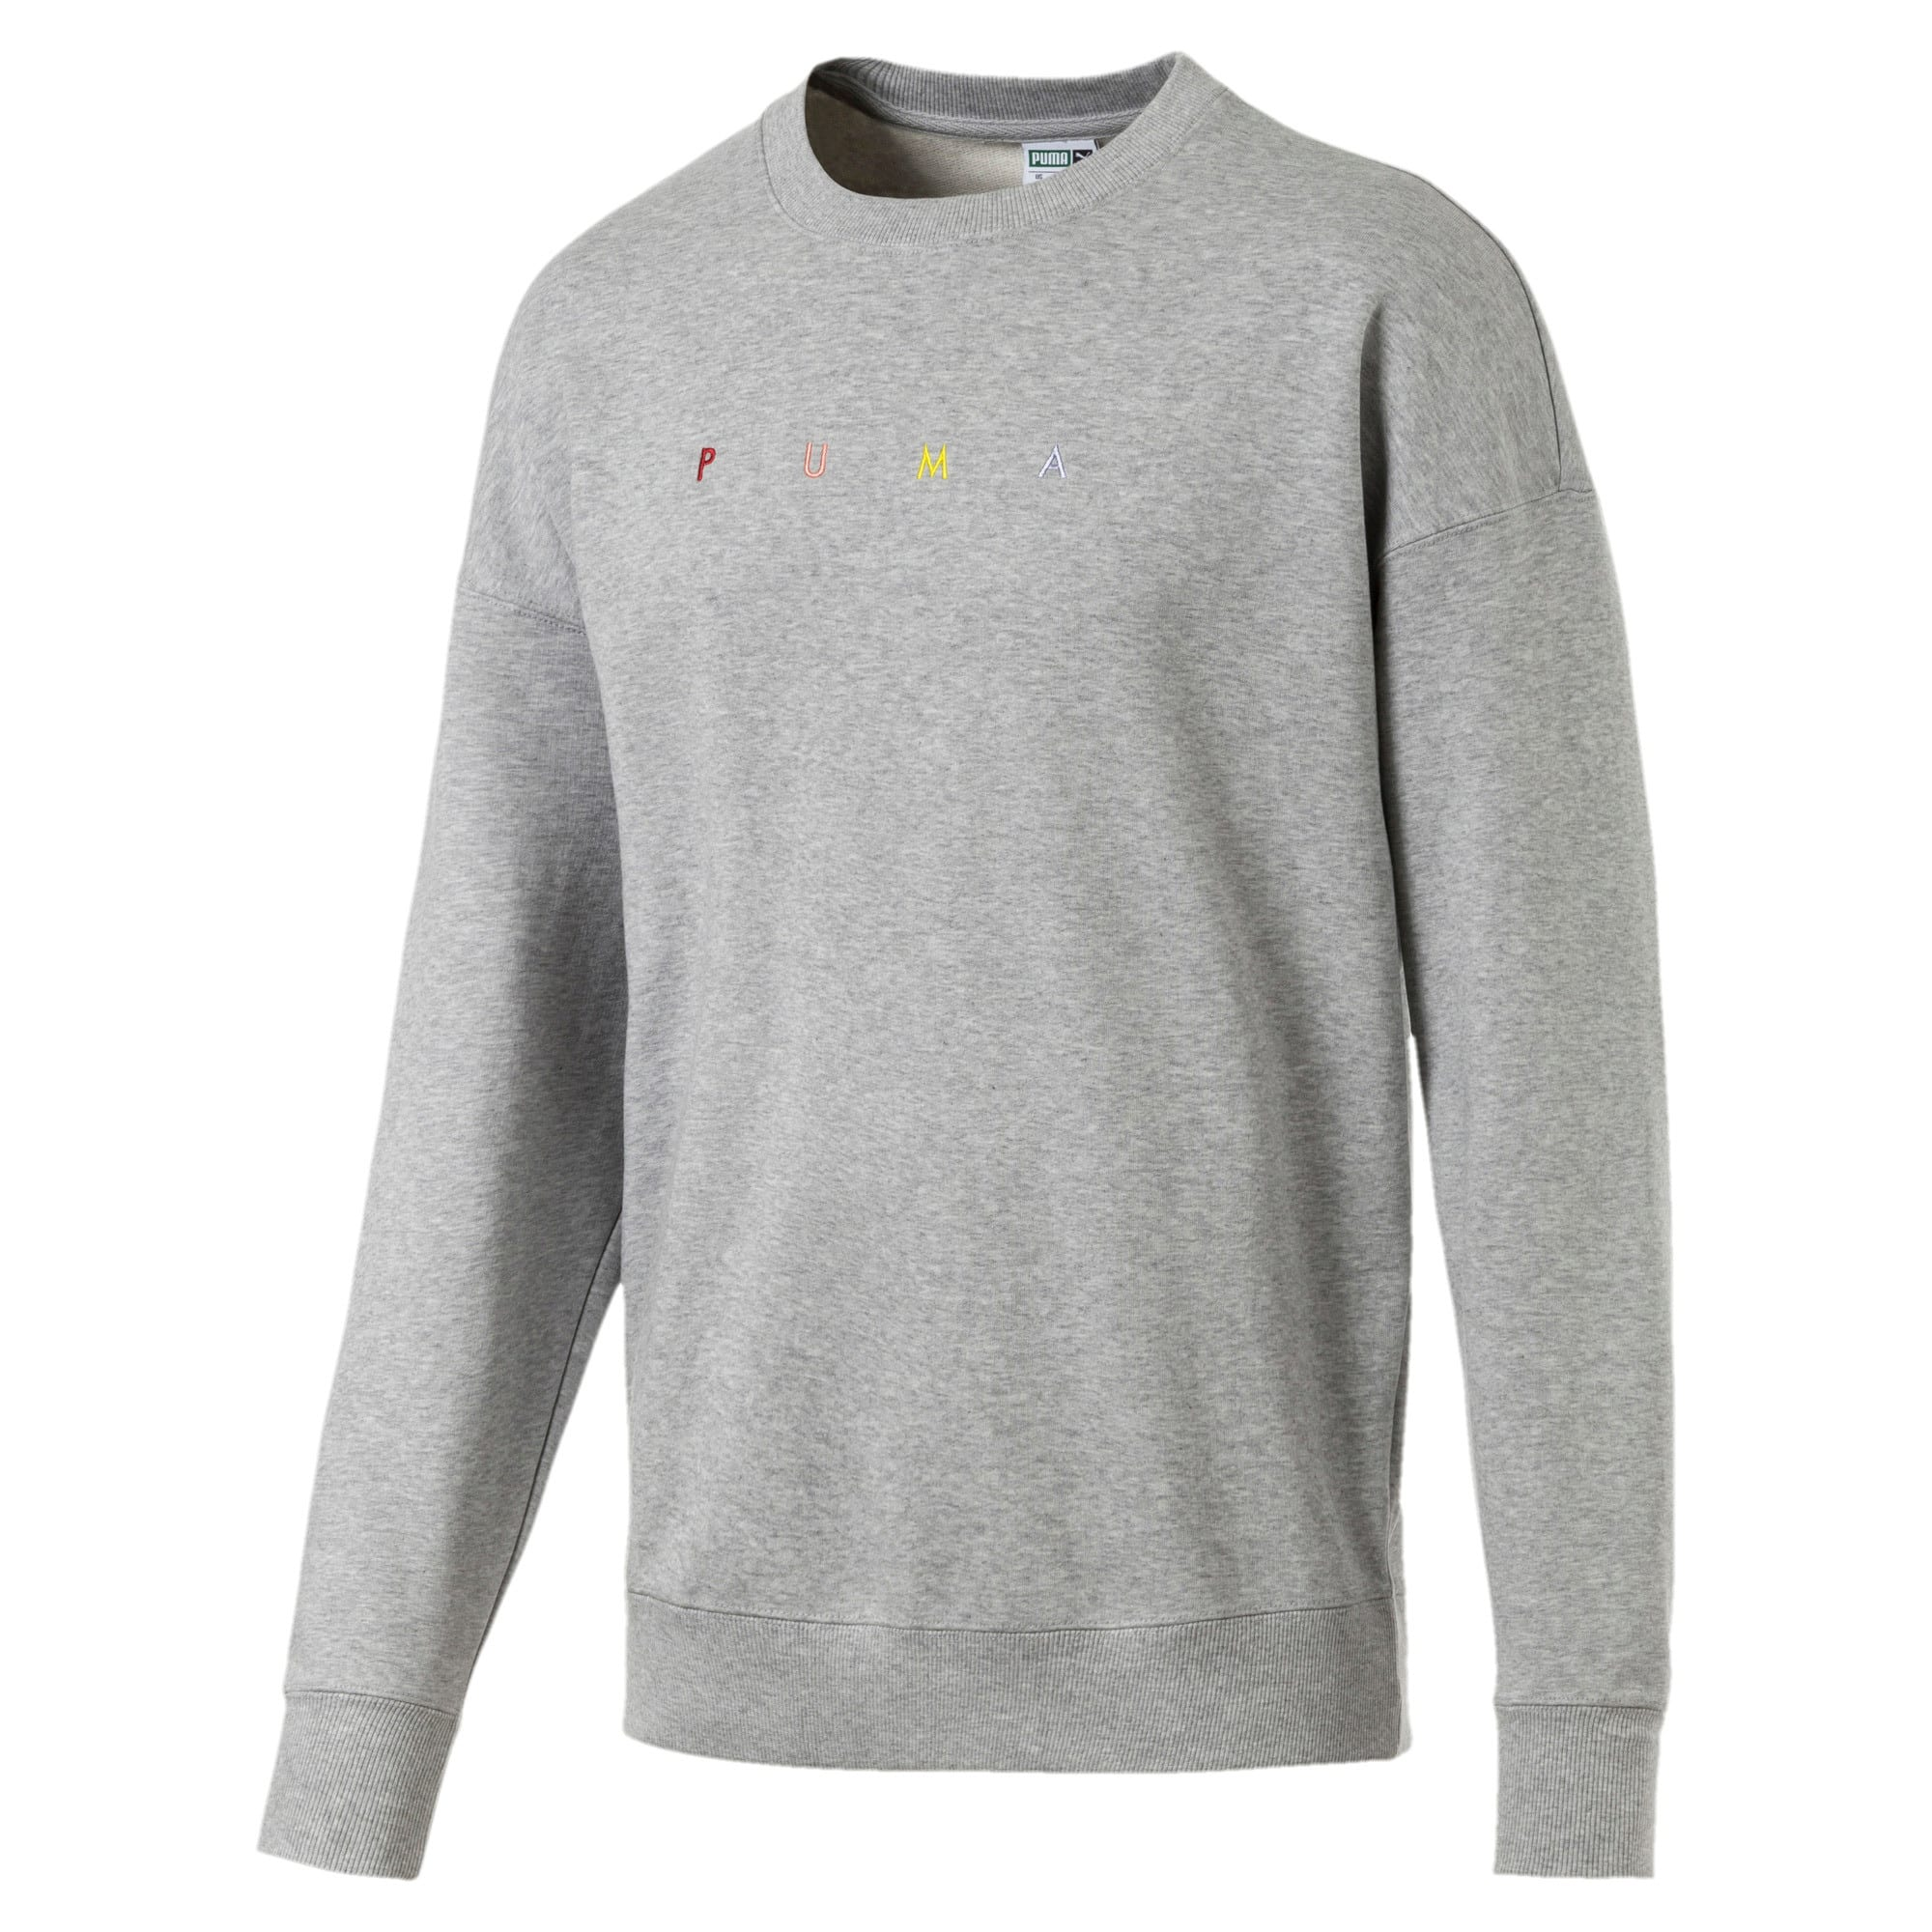 Thumbnail 1 of FIERCE CAT クルースウェット, Light Gray Heather, medium-JPN